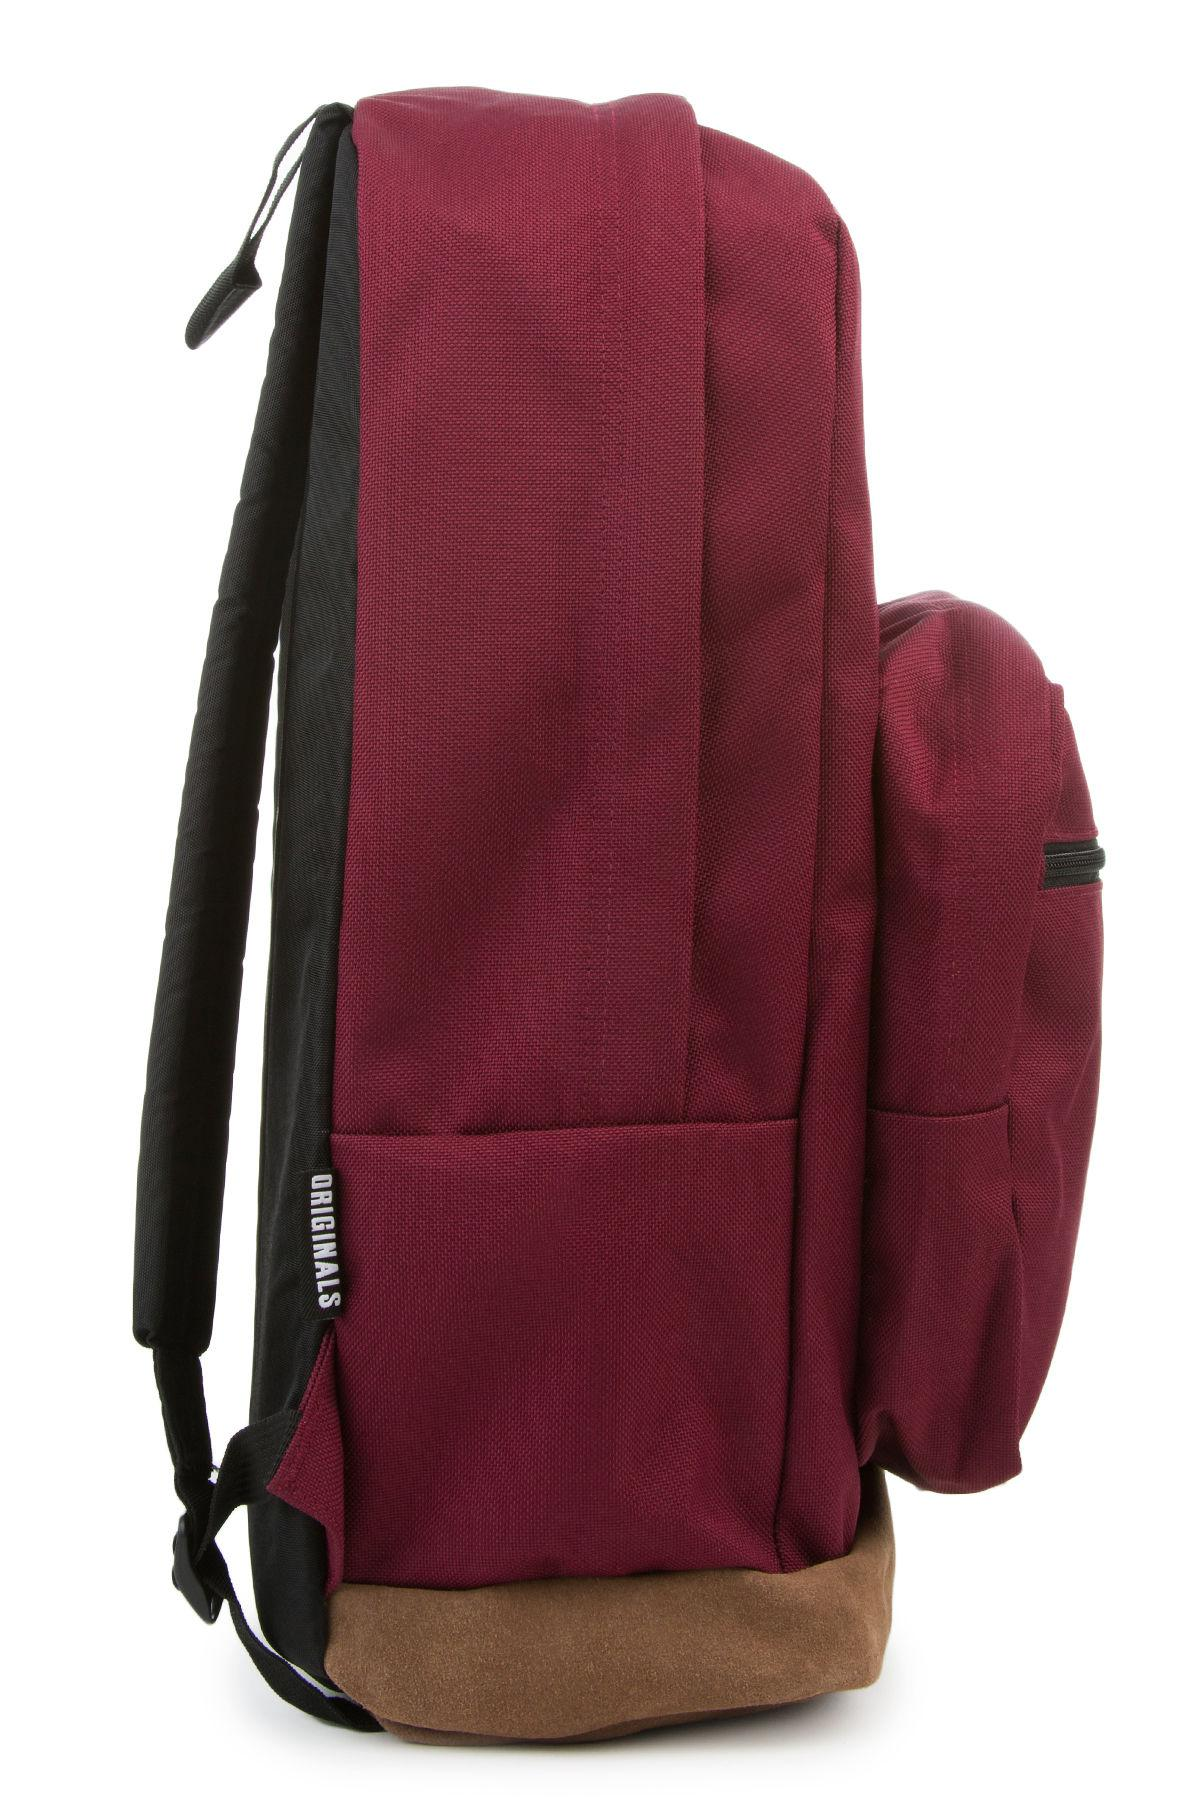 991a6d7c93 Jansport Right Pack Russet Red 31l Backpack- Fenix Toulouse Handball